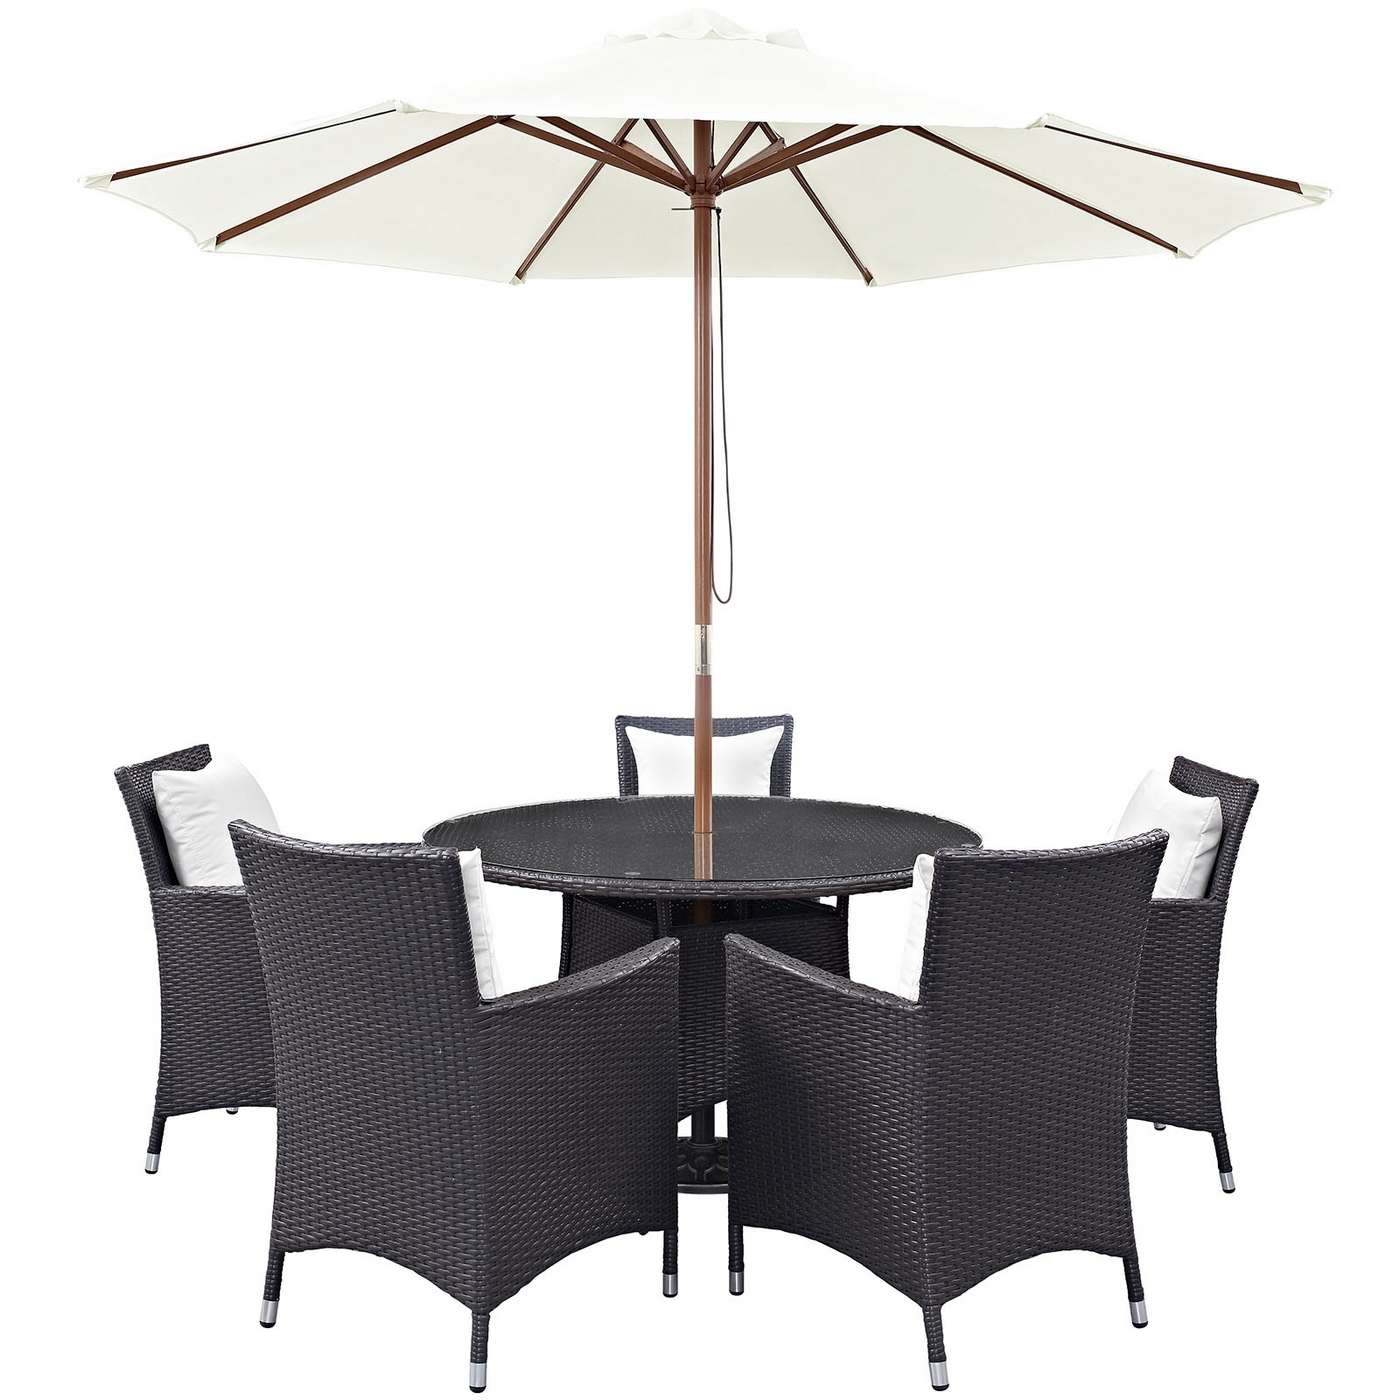 Details About New Convene Modern 7 Piece Outdoor Patio Rattan Round 47 Dining Table Set White